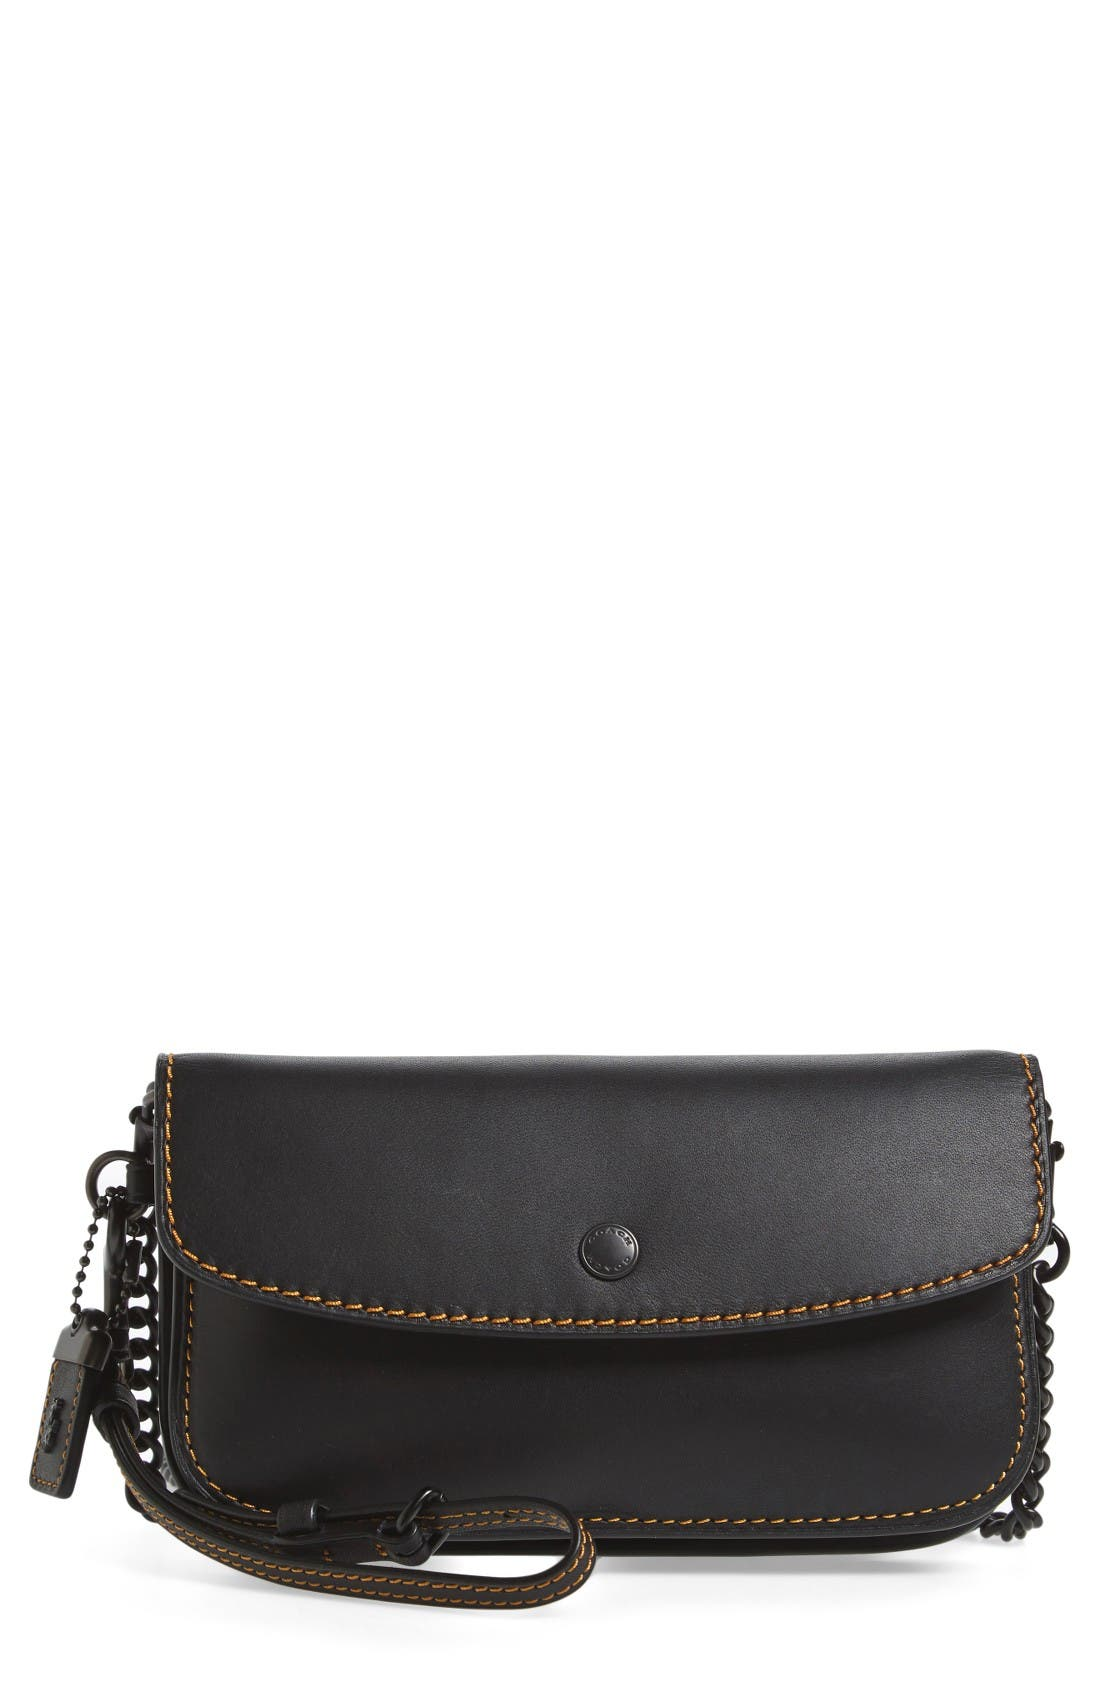 Main Image - COACH 1941 Leather Clutch